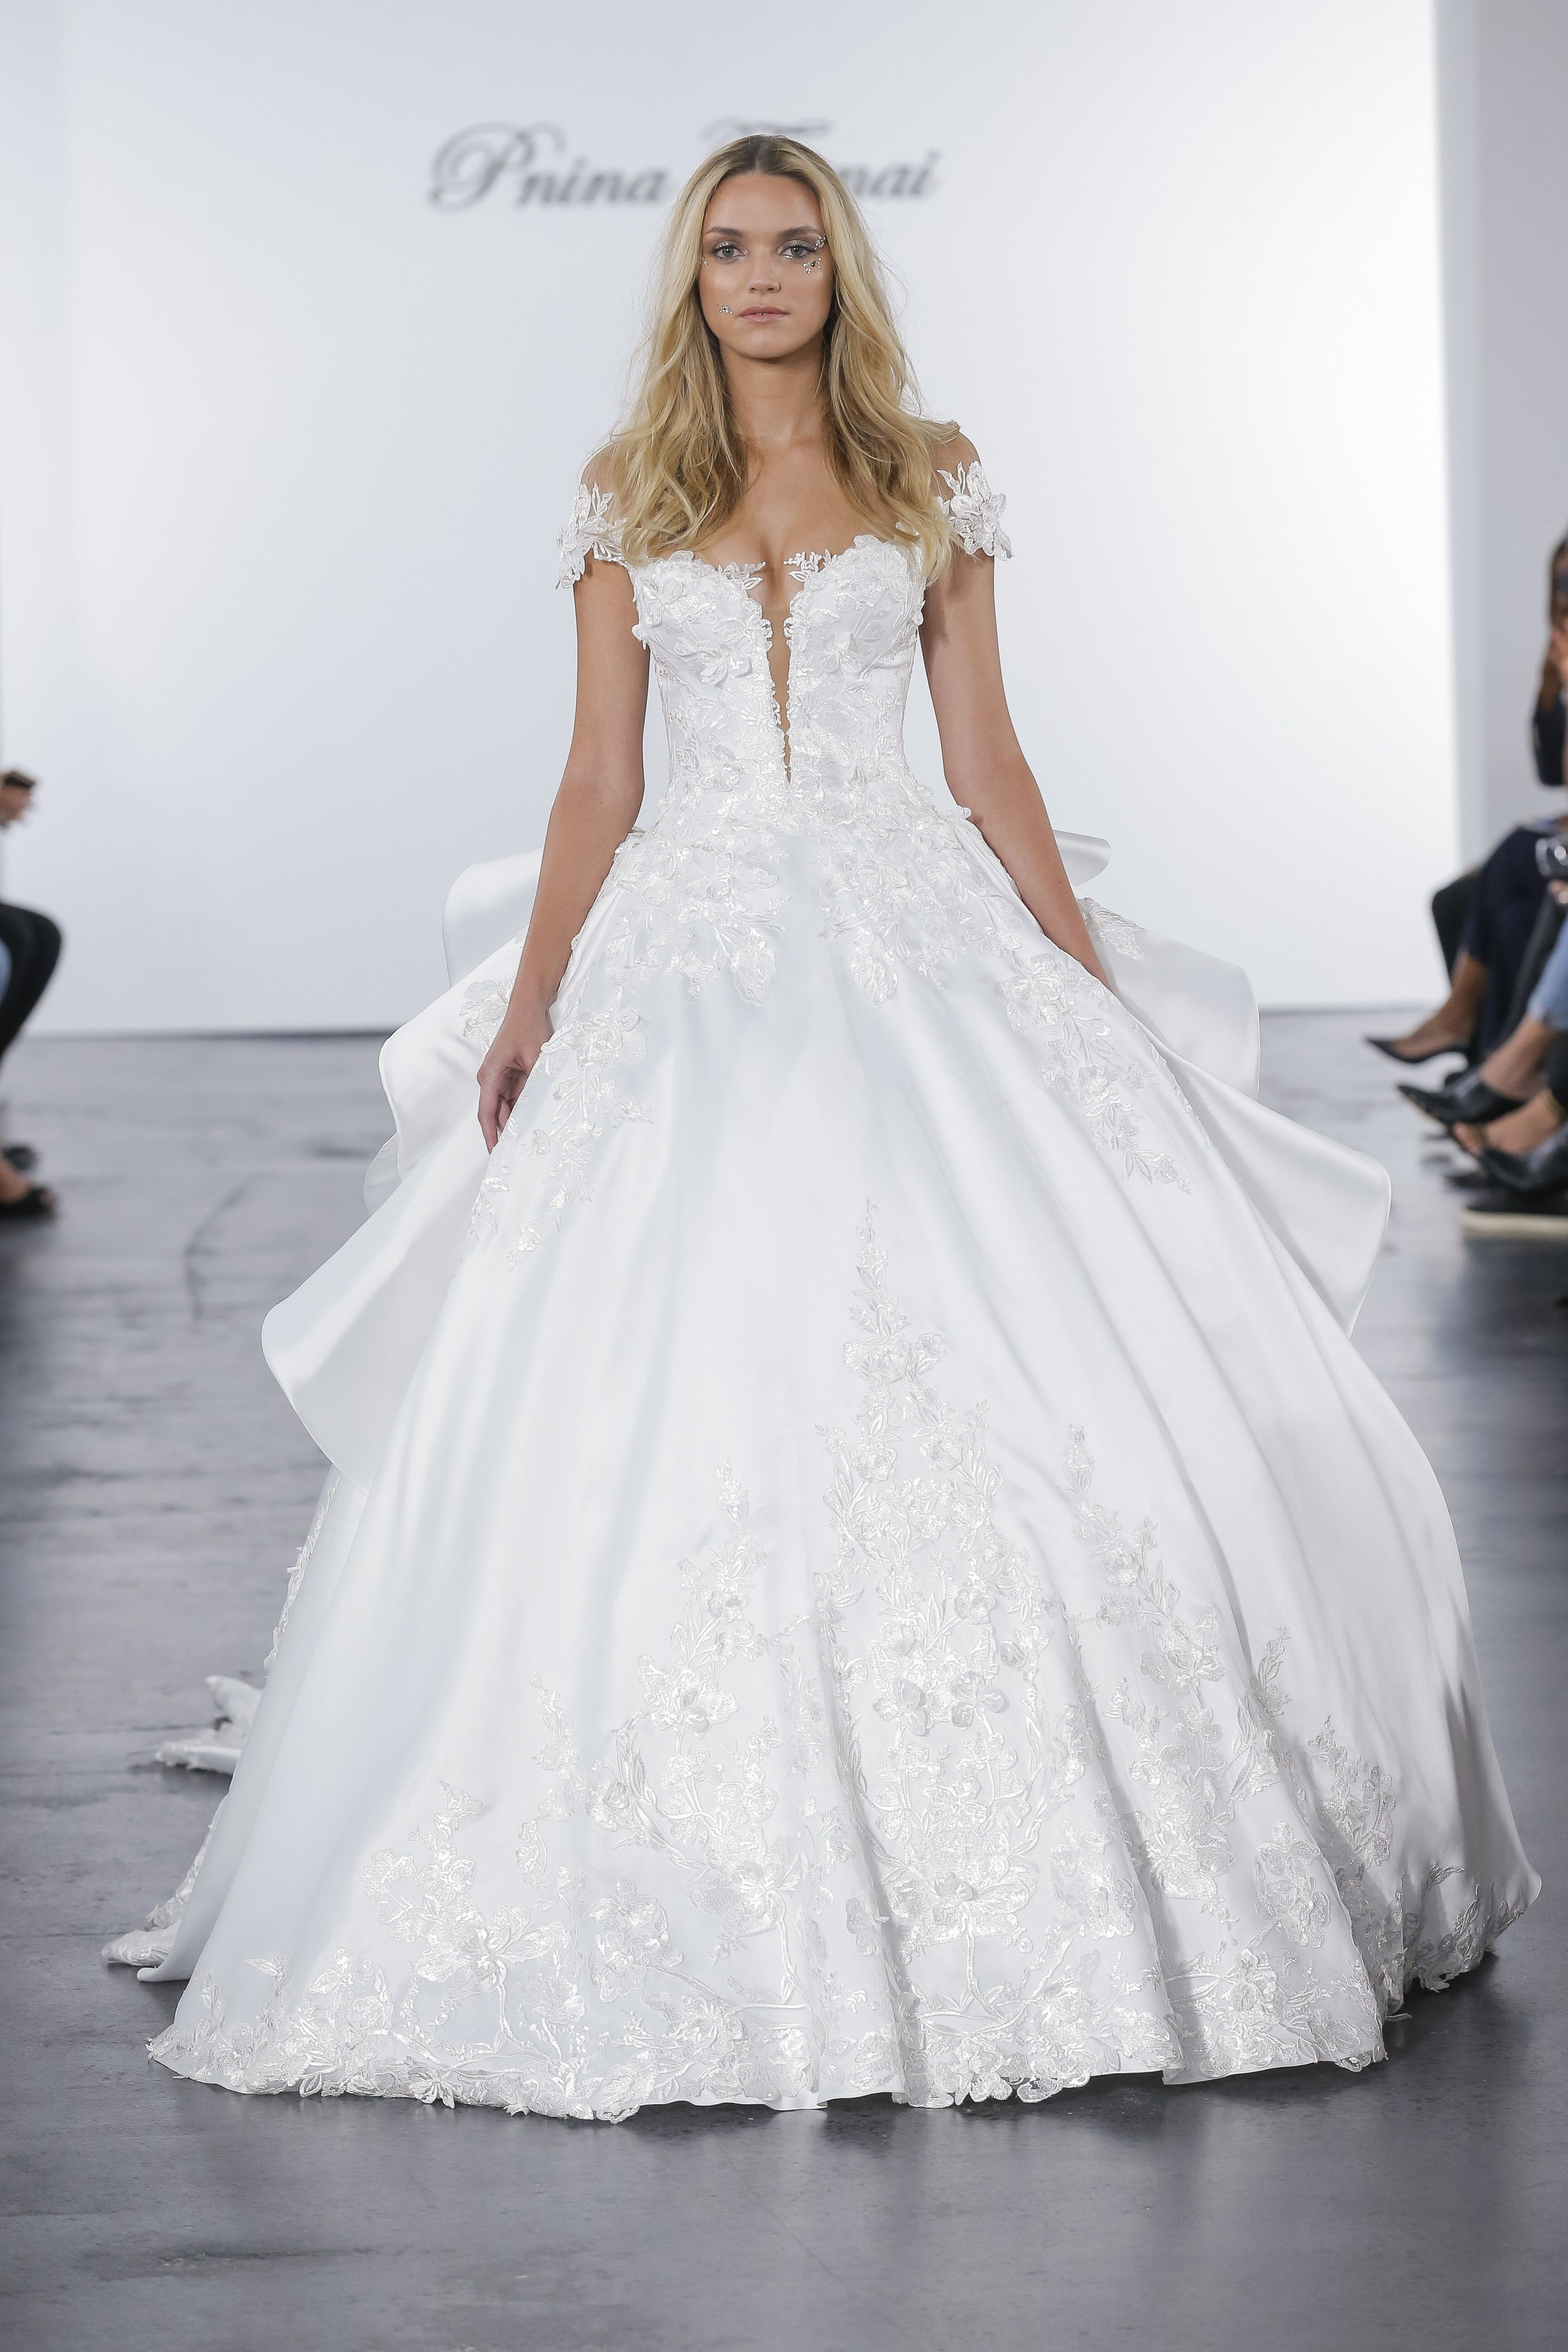 661999cb5a2bf Pnina Tornai for Kleinfeld Bridal & Wedding Dress Collection Fall 2018 |  Brides This skirt pattern, in more A-Line skirt, close up the top.